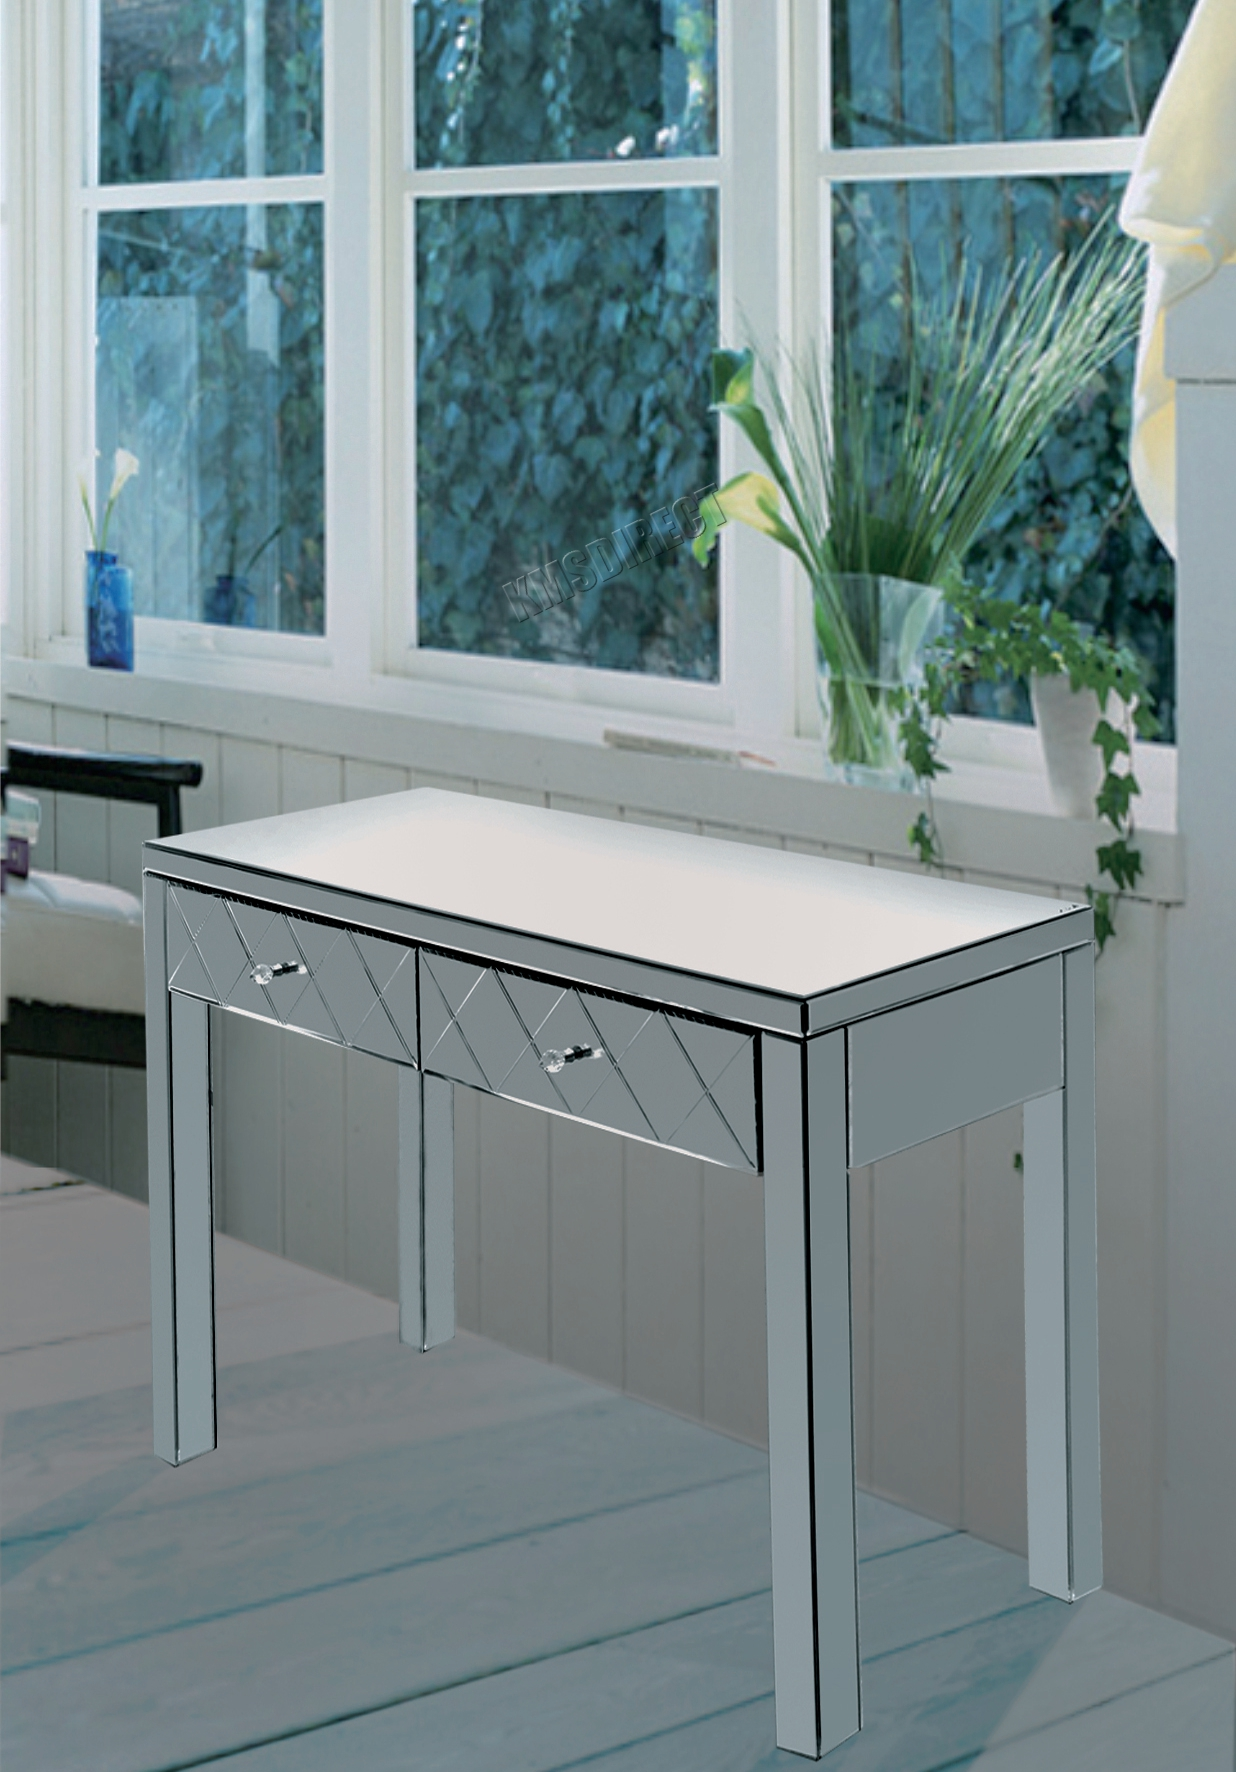 Glass dressing table - Foxhunter Mirrored Furniture Glass Dressing Table With Drawer